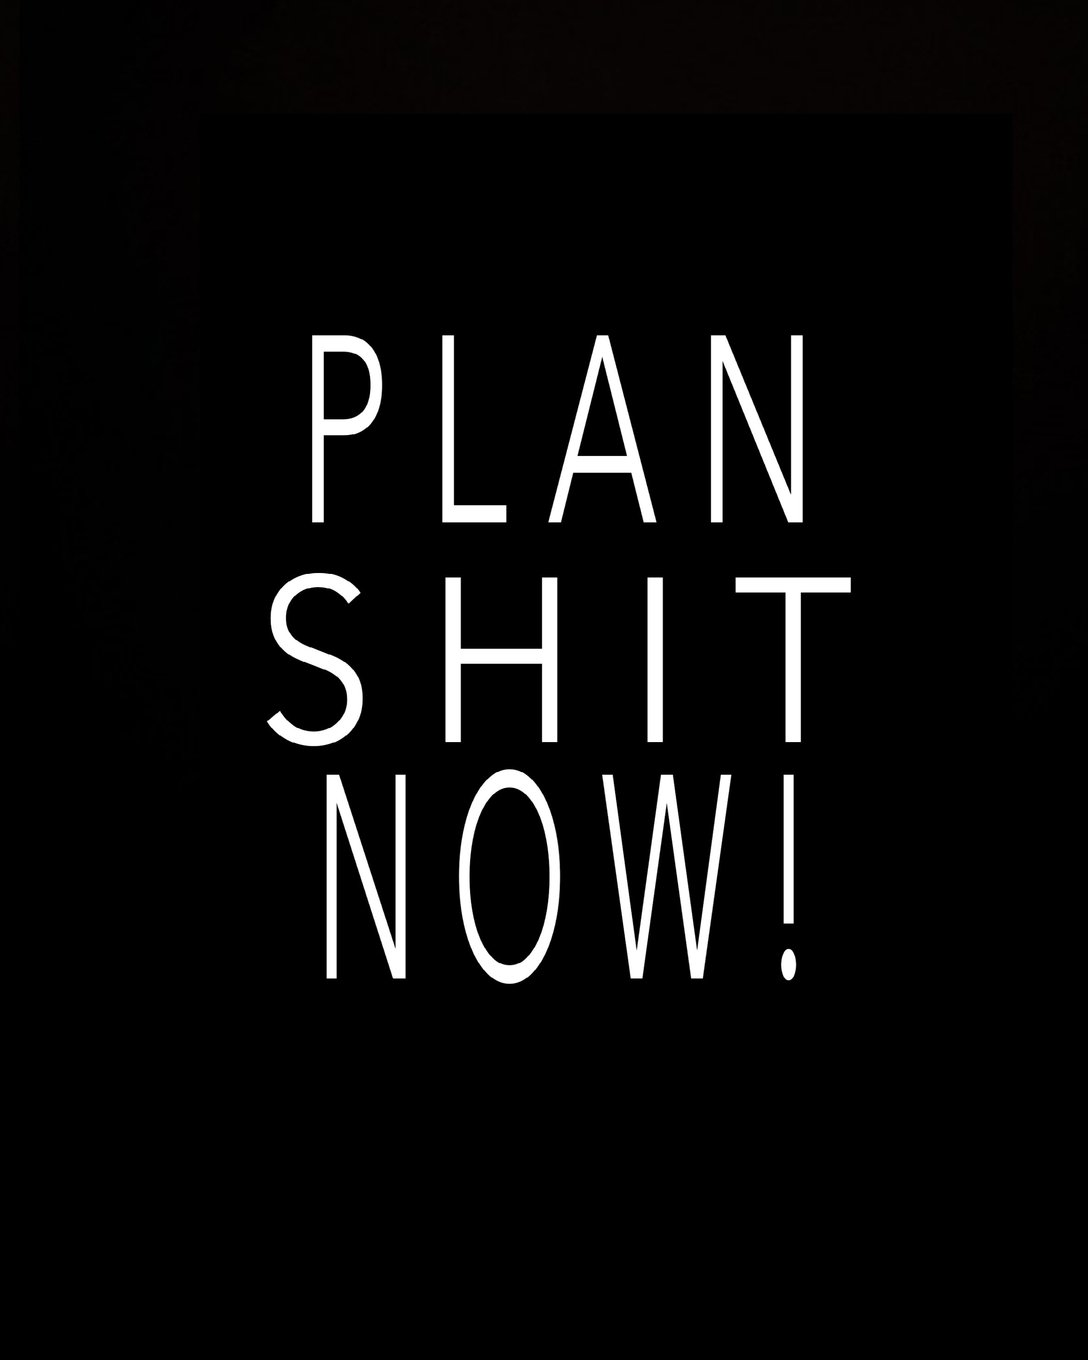 Download Plan Shit Now!: 2018-2019 Two Year Planner July 2018 to December 2019 Planner  18 Month Planner  2018-2019 Calendar Planner Daily to December 2019 Academic Planner ebook